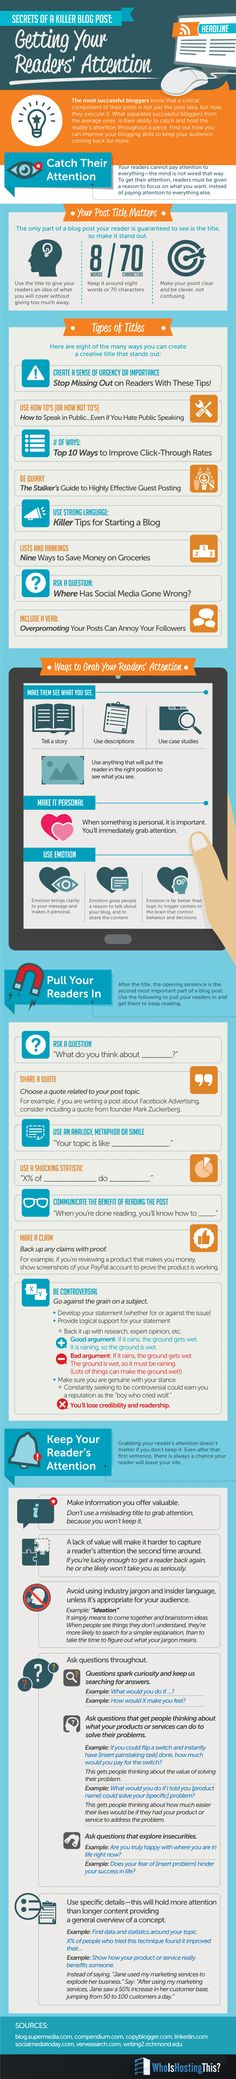 Secrets of a Killer Blog Post (Infographic)